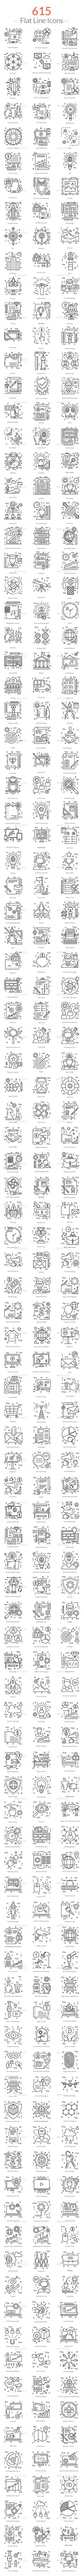 615 Flat Line Icons Design Template - Icons Design Template Vector EPS, AI Illustrator. Download here: https://graphicriver.net/item/615-flat-line-icons/19339022?ref=yinkira